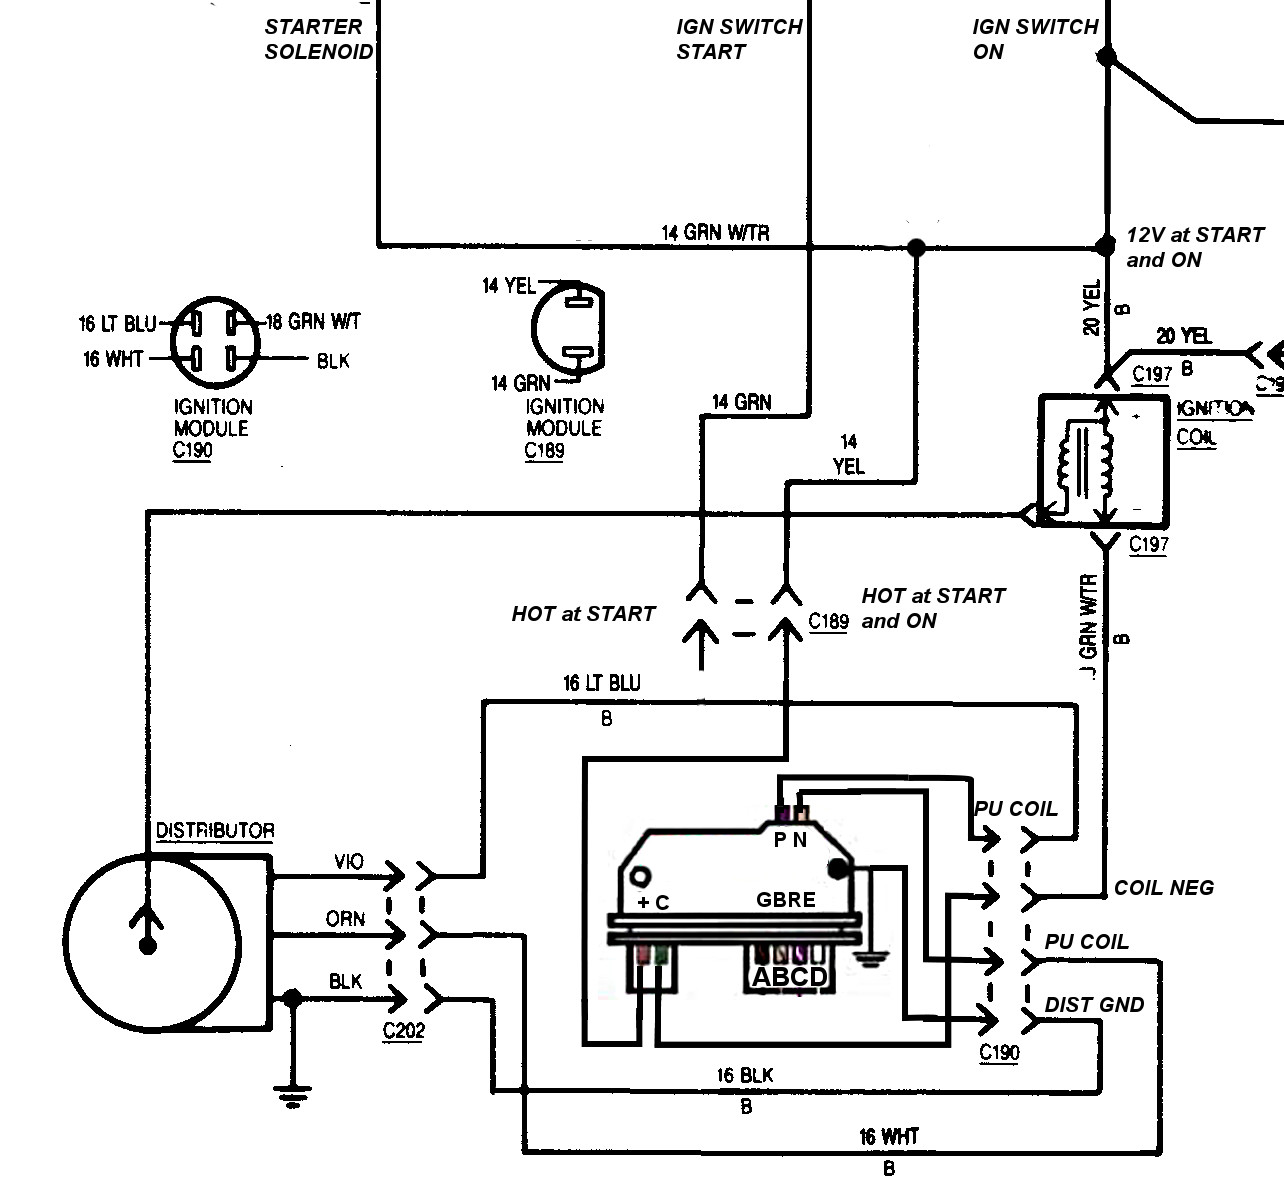 [WRG-1835] 5 Pin Gm Hei Ignition Module Wiring Diagram